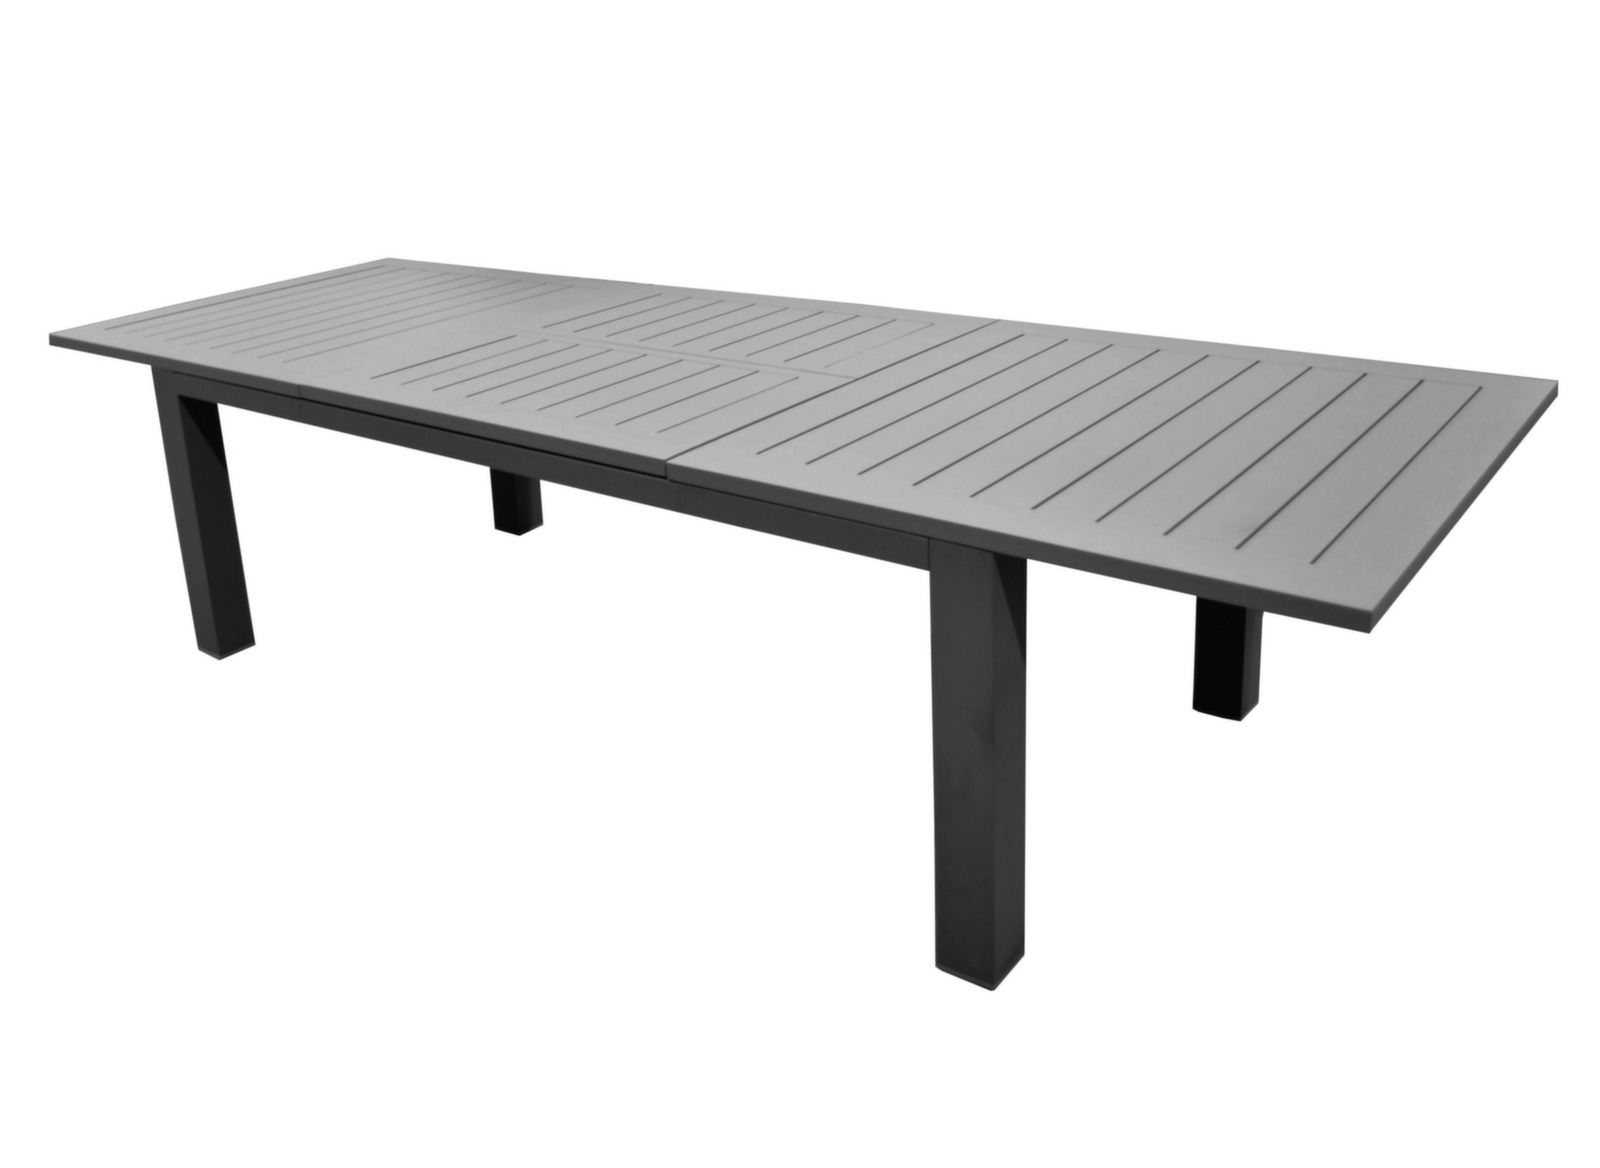 Table de jardin aluminium 12 places aurore oc o proloisirs - Table de jardin aluminium ...